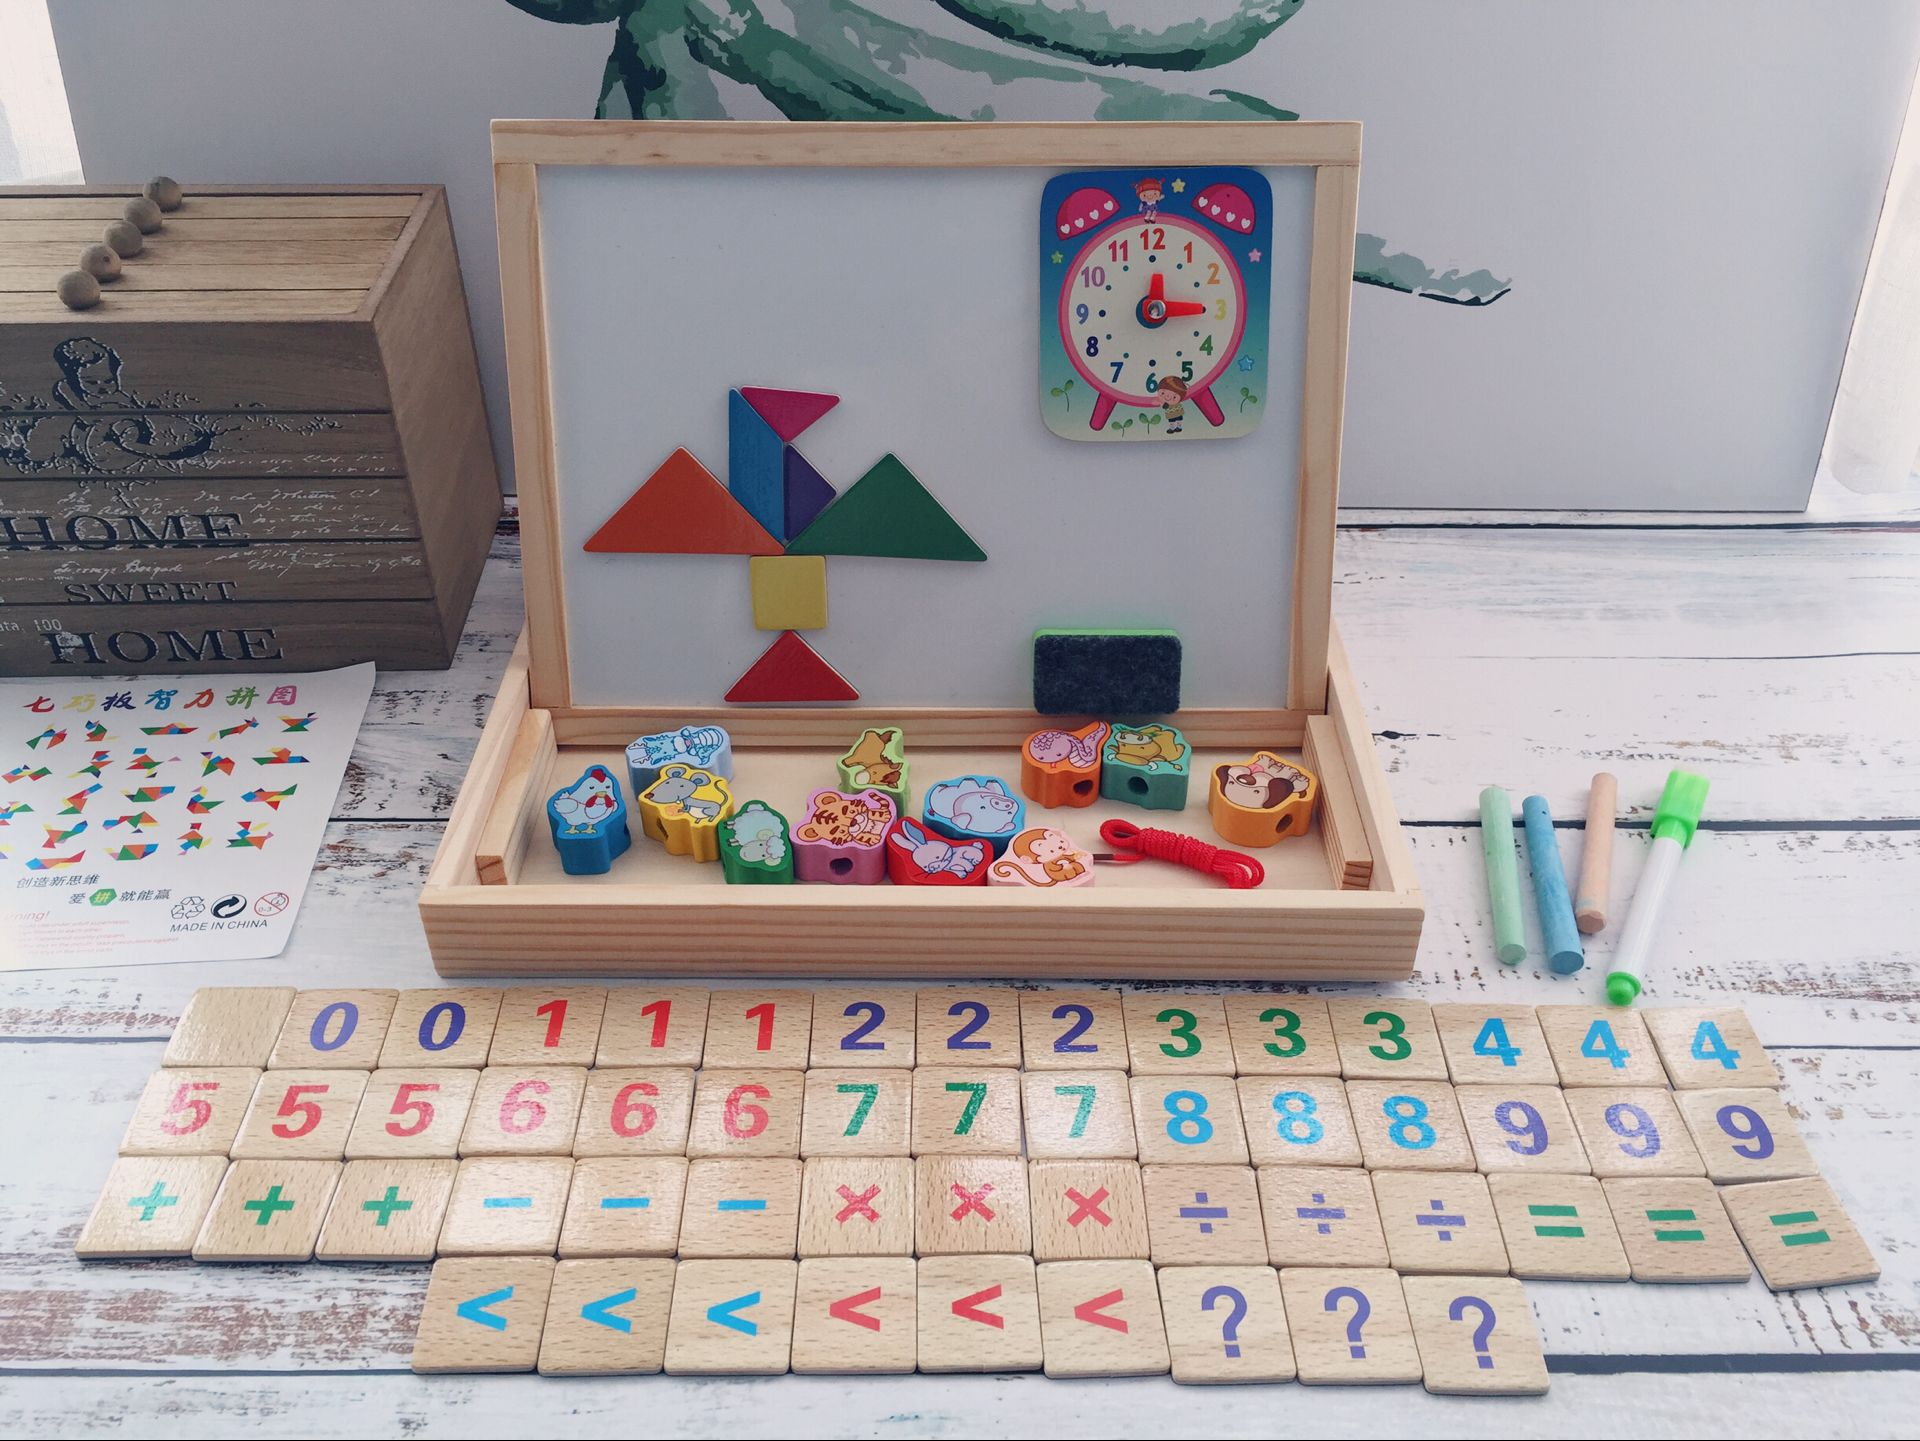 Early Educational Teaching Aid Toy Multi-functional With Numbers Computing Educational Toy Kindergarten Early Childhood Educatio